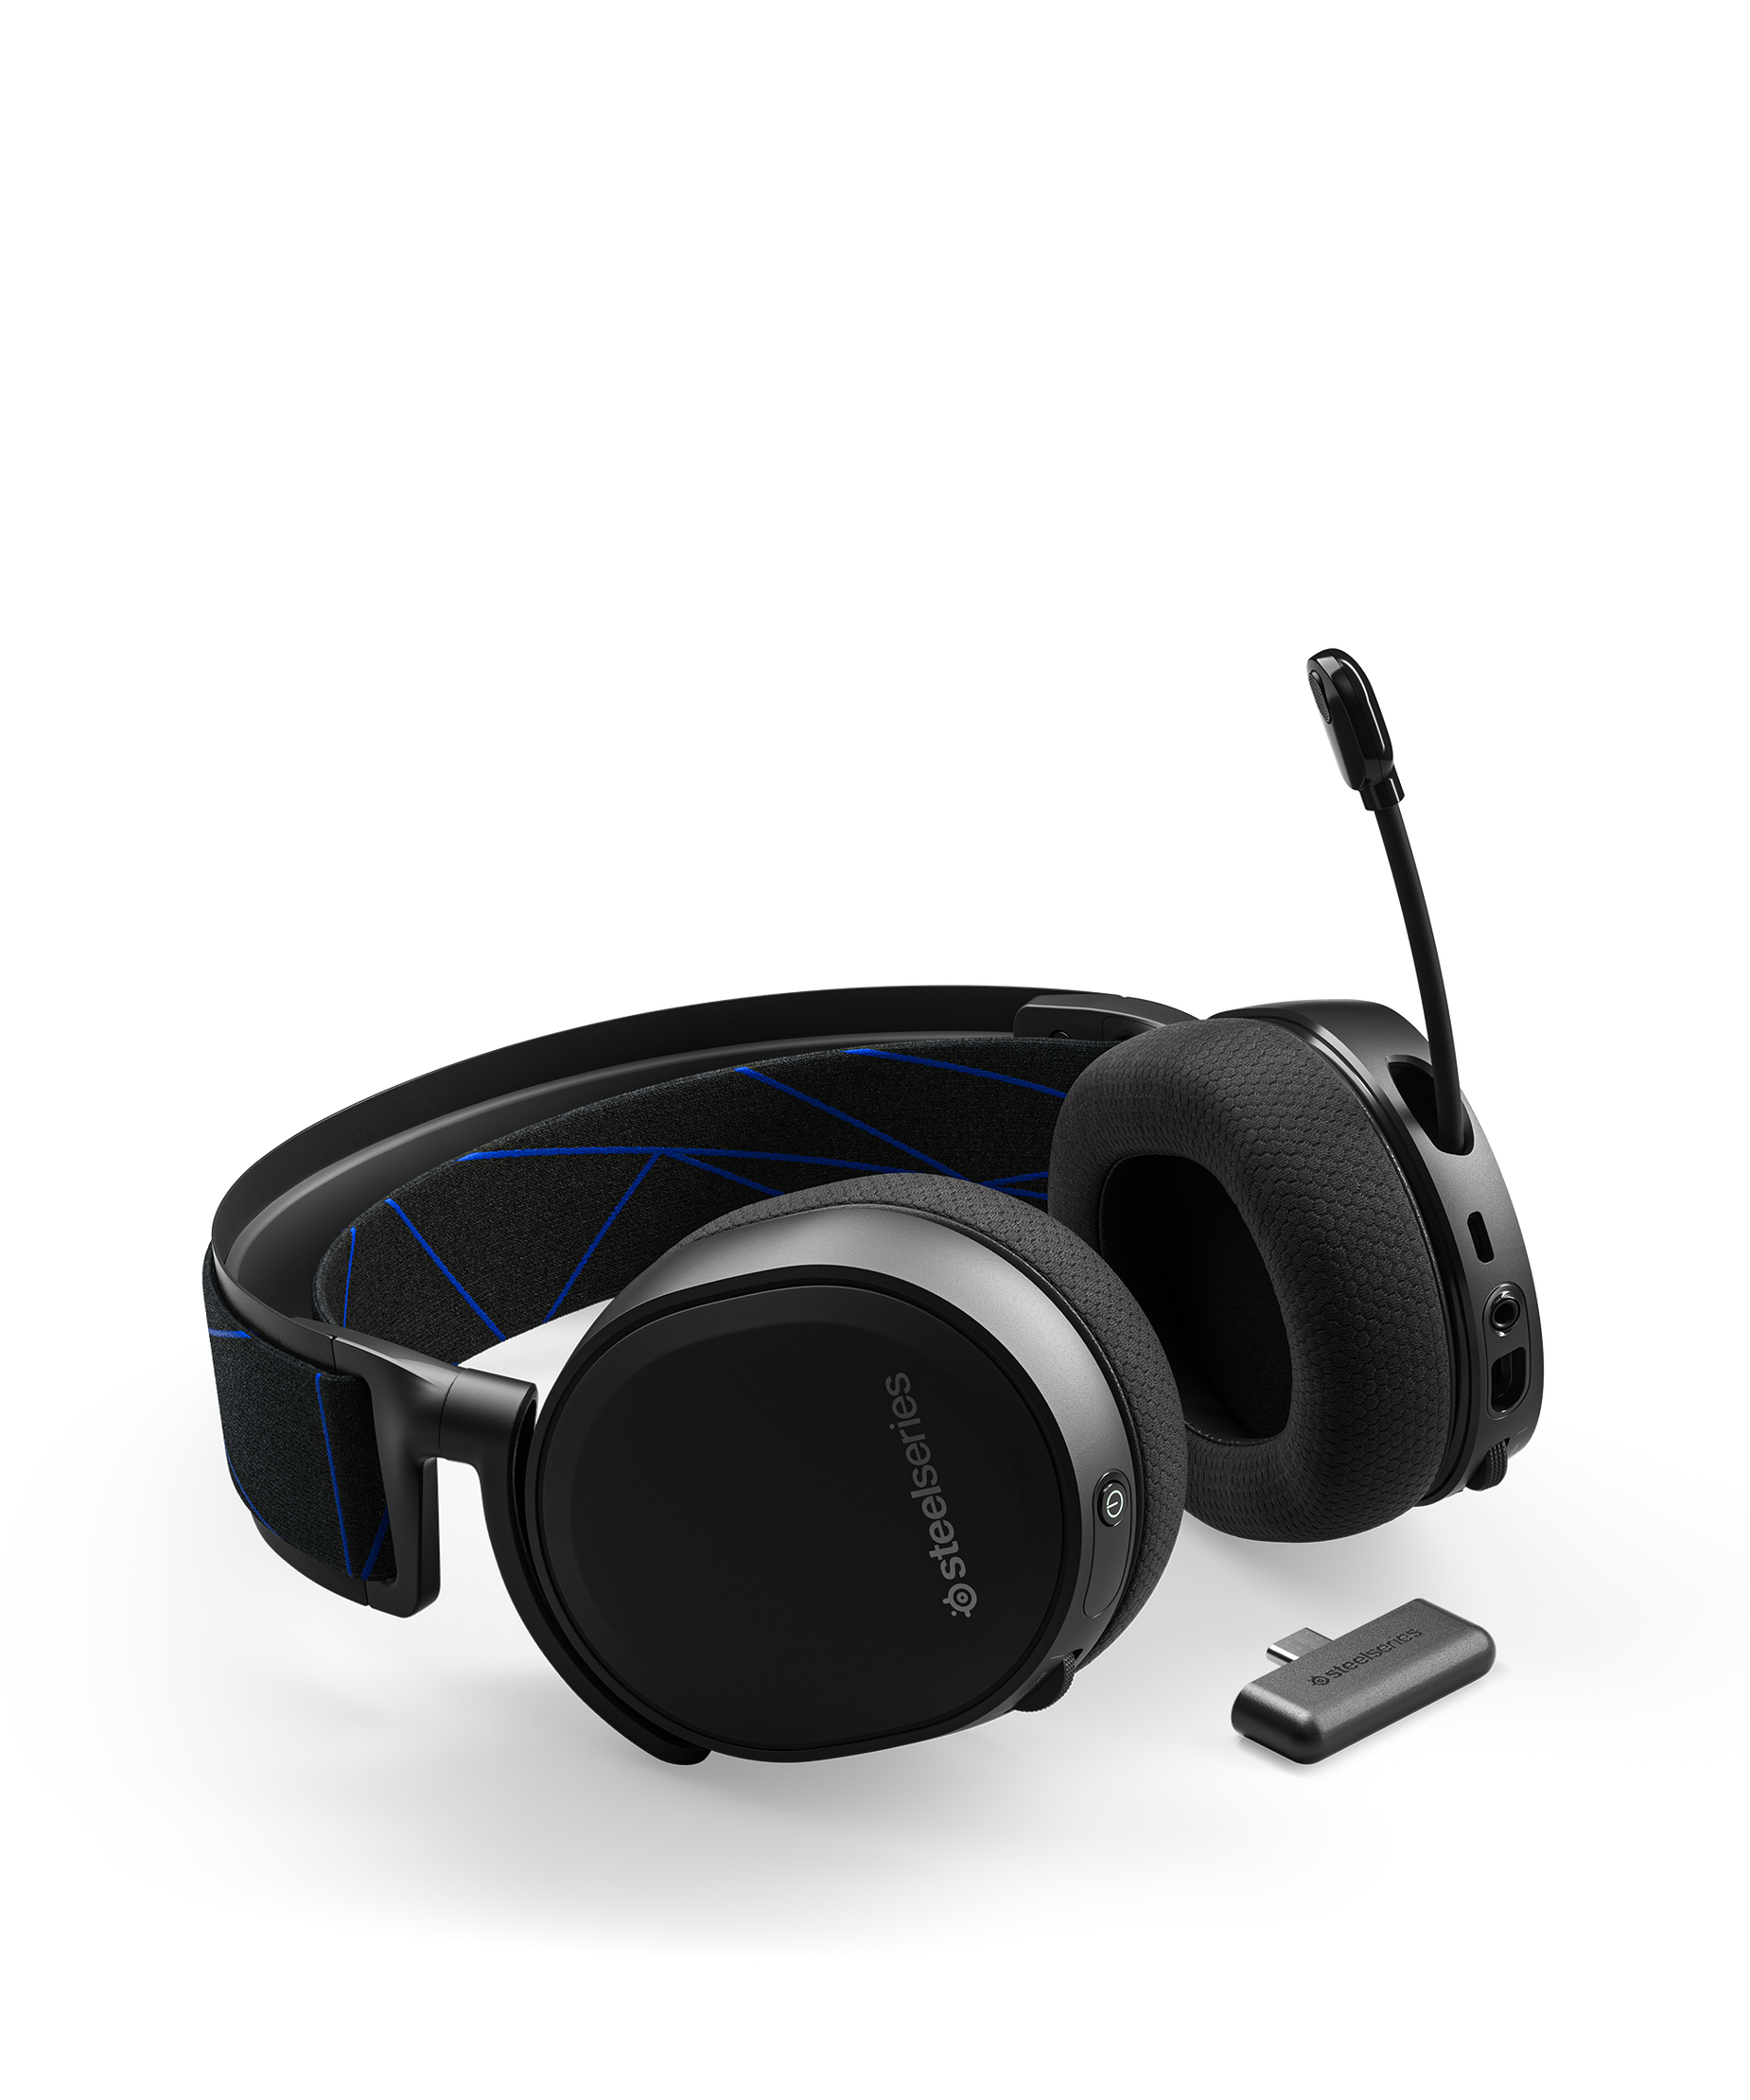 Headset laying flat with clearcast microphone in the extended position